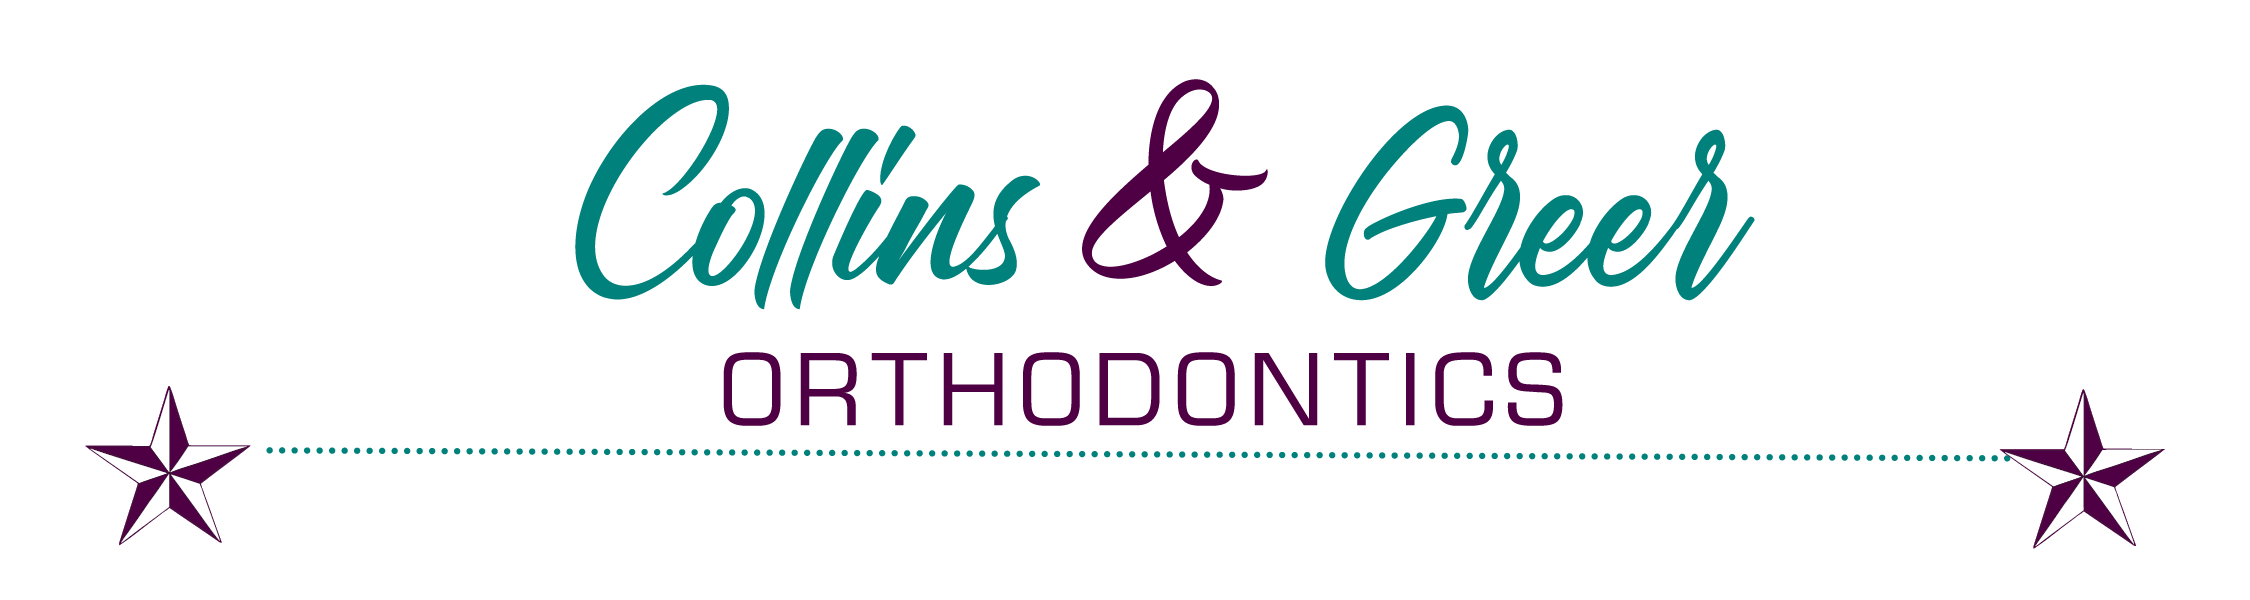 Collins and Team Orthodontics